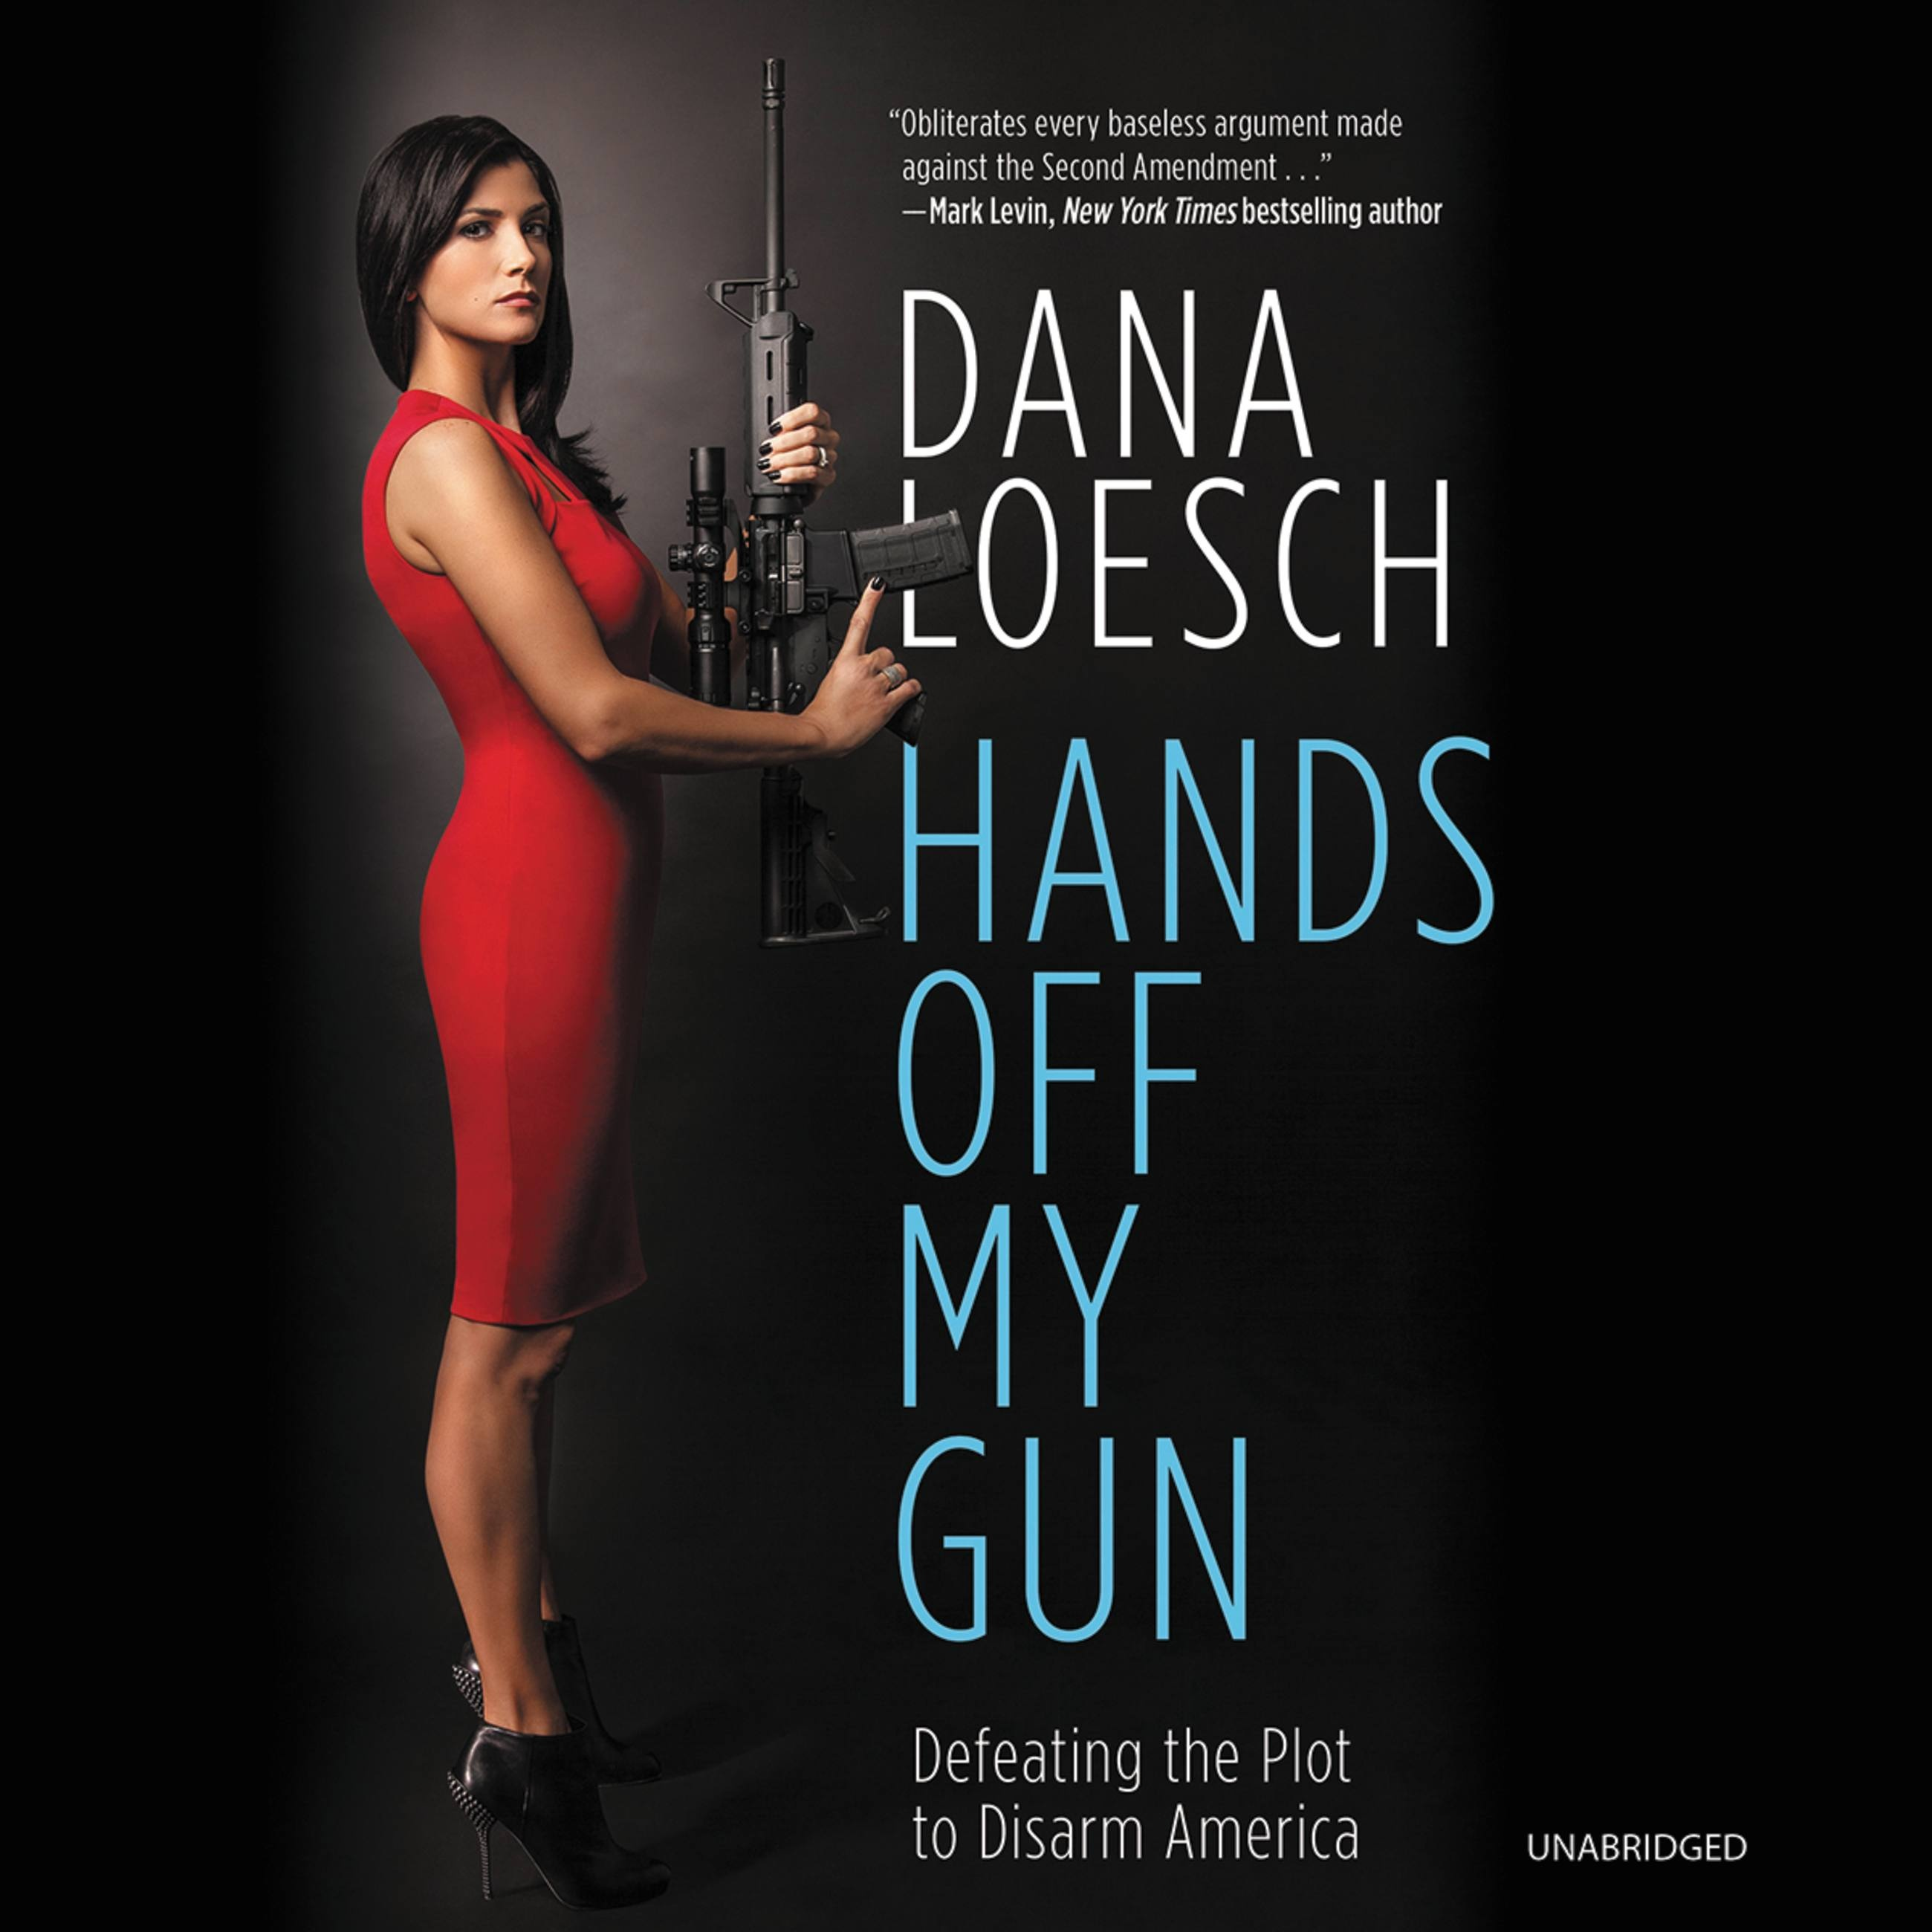 Book Review: Hands Off My Gun by Dana Loesch